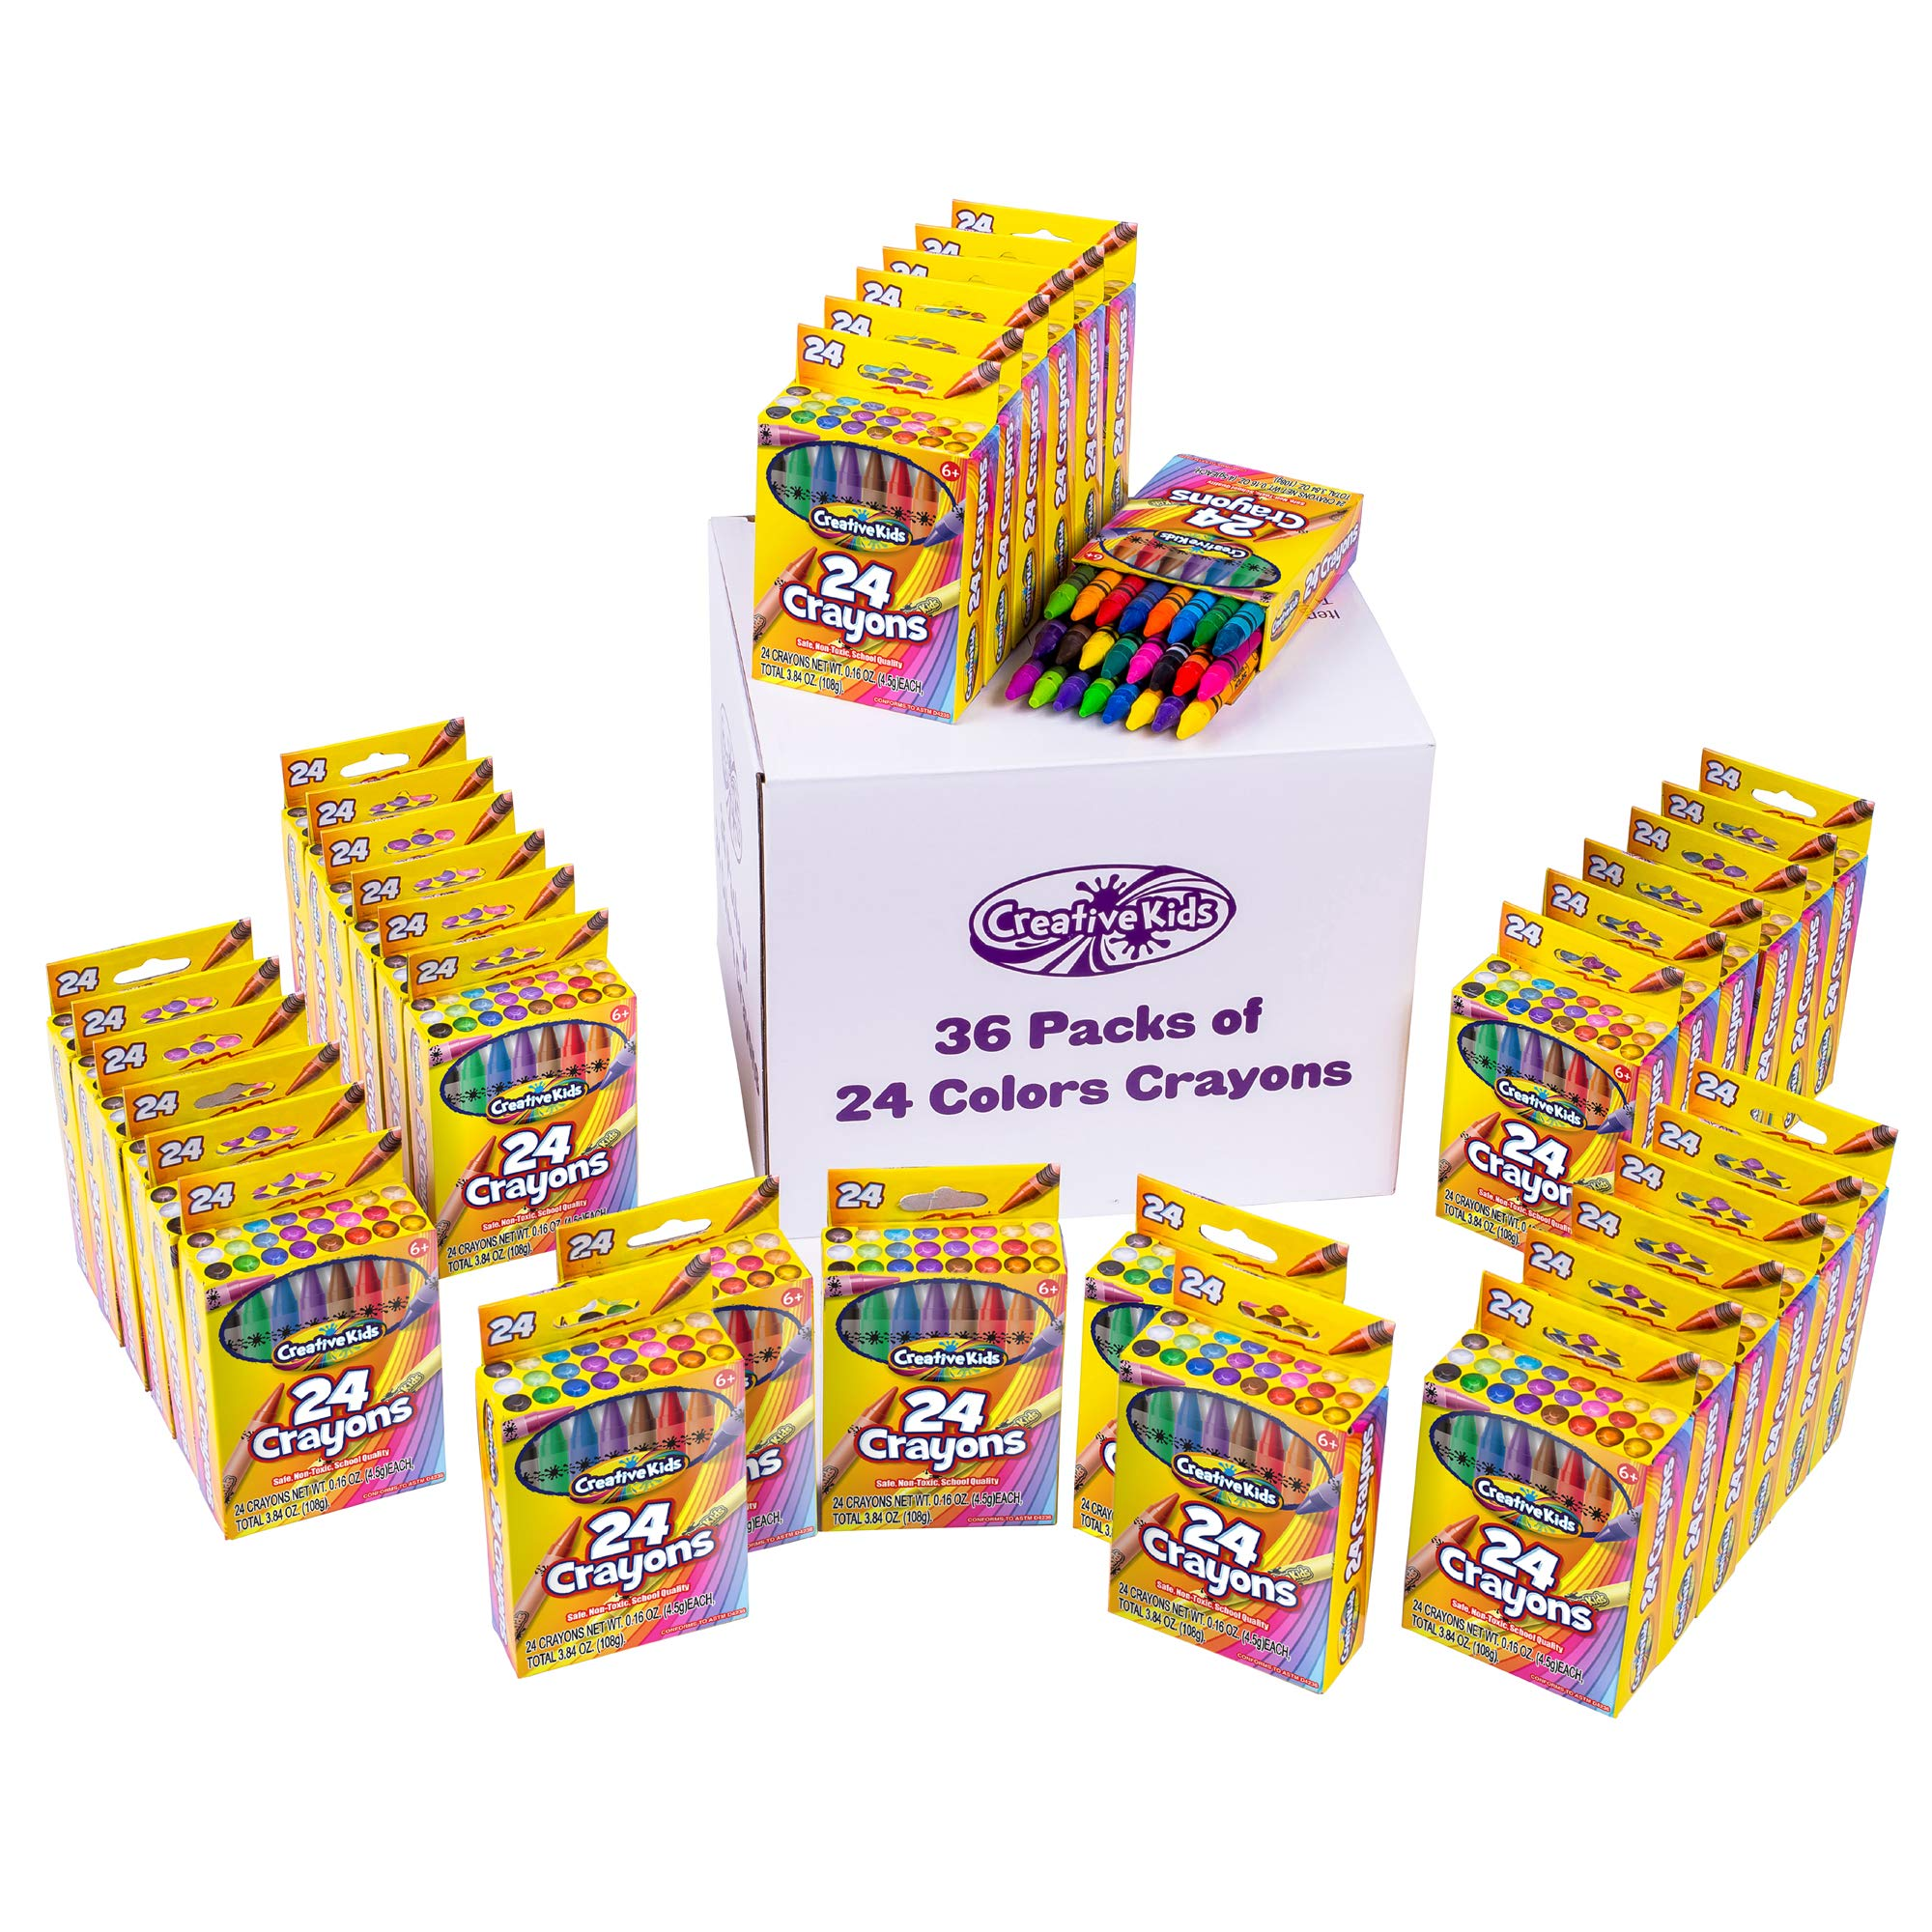 Creative Kids Bulk Crayons Classroom Classpacks Sets - 36 Packs of 24 Assorted Wax Coloring Crayons For Party Favors Preschool, Kindergarten, School & Art Crafts Supplies - ASTM Non Toxic